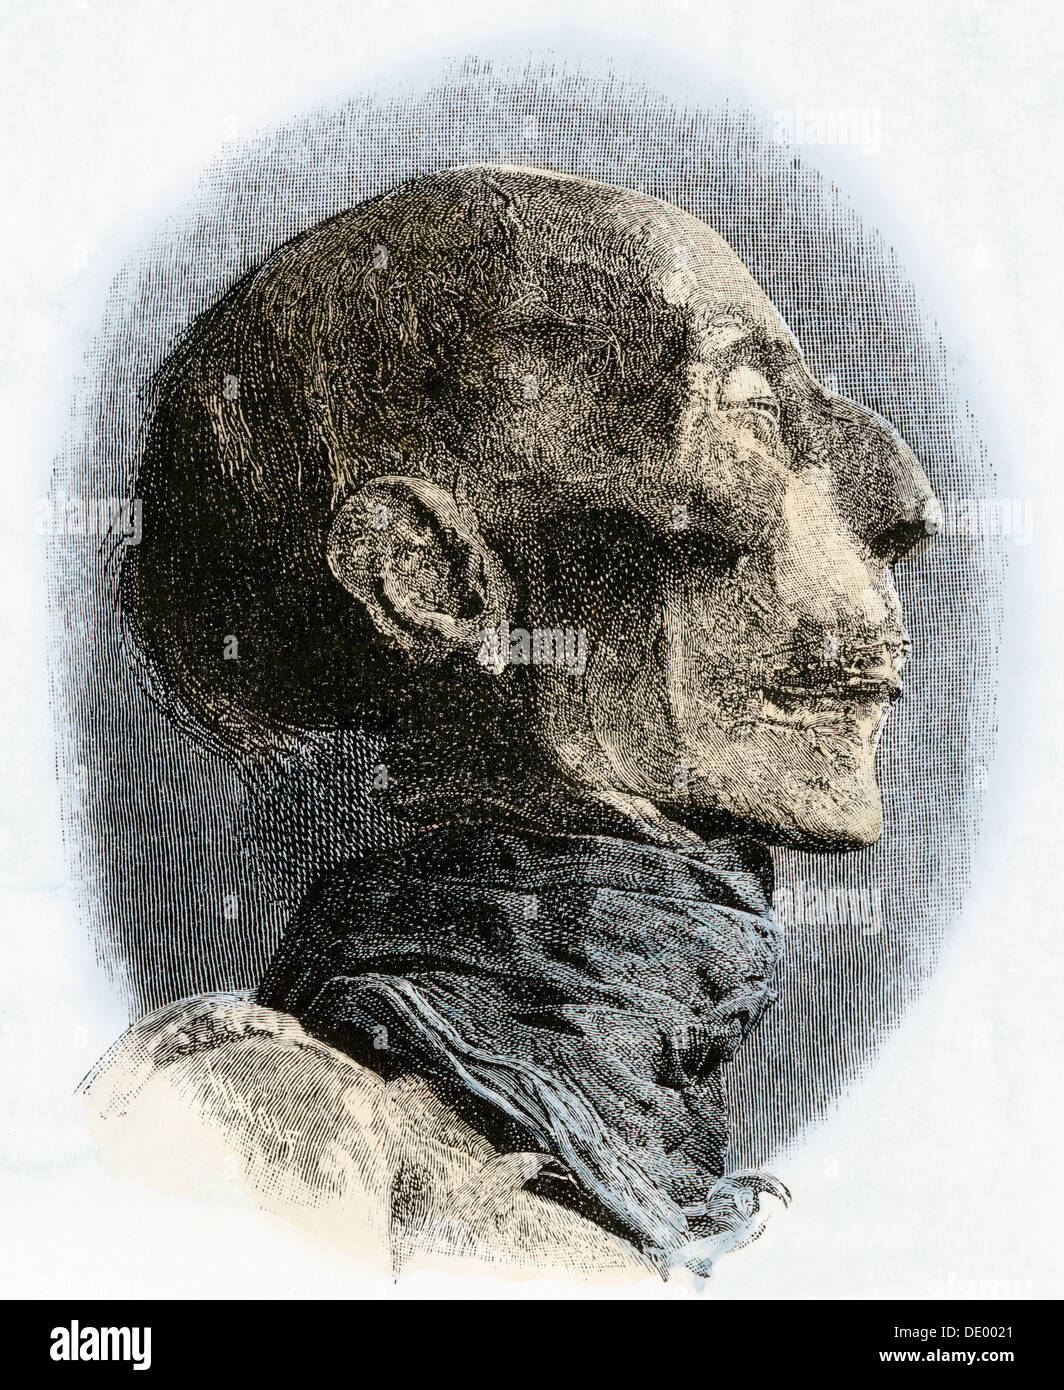 Profile of Ramses II mummy, excavated in the late 1800s. Hand-colored woodcut - Stock Image